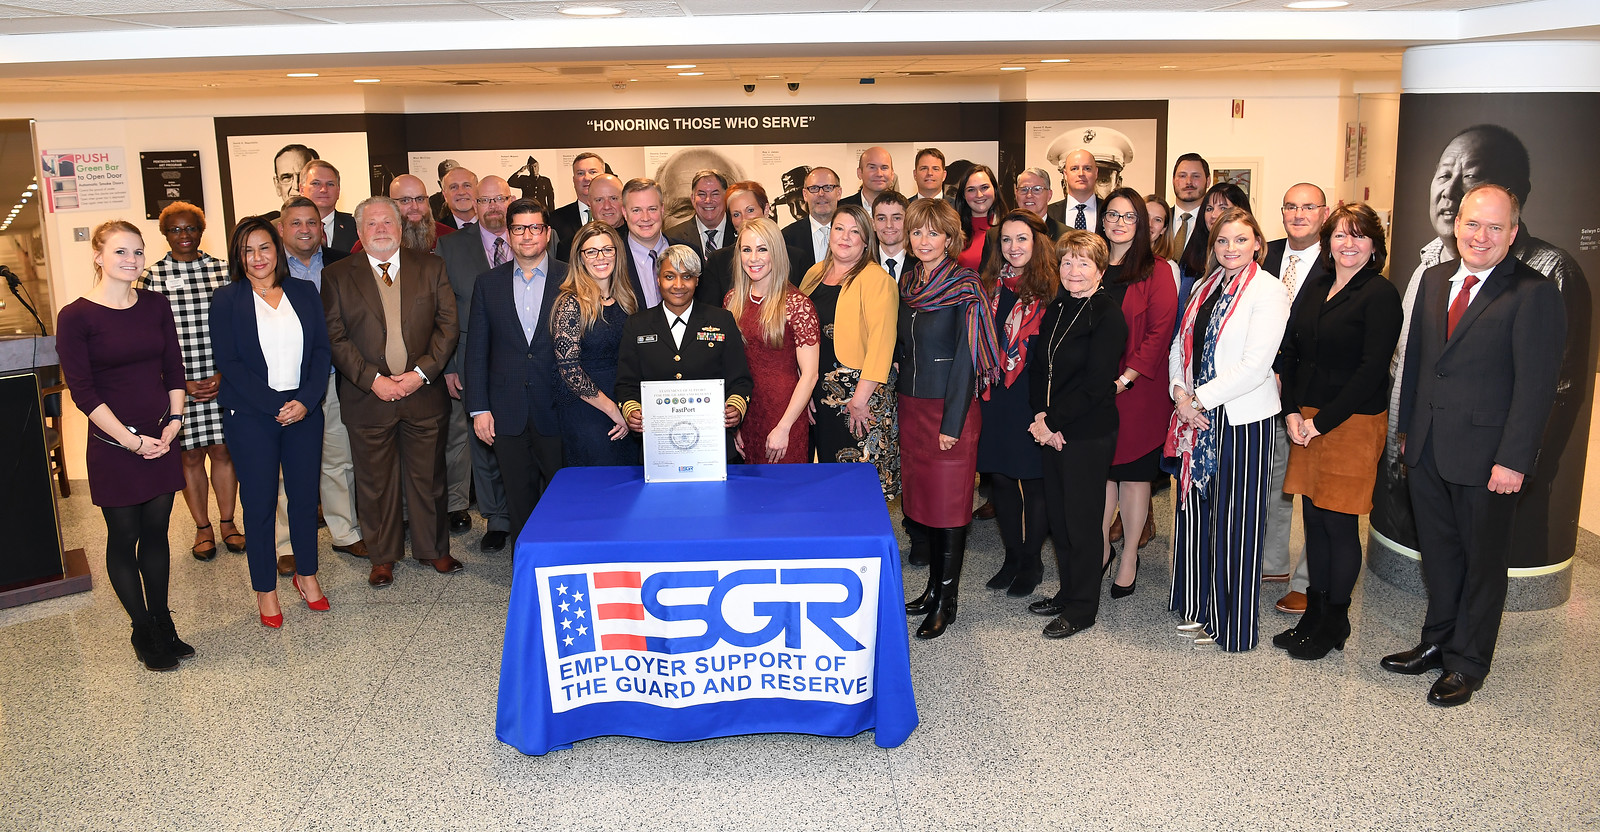 Employers and organization representatives photographed following the 2018 Statement of Support Signing Ceremony.